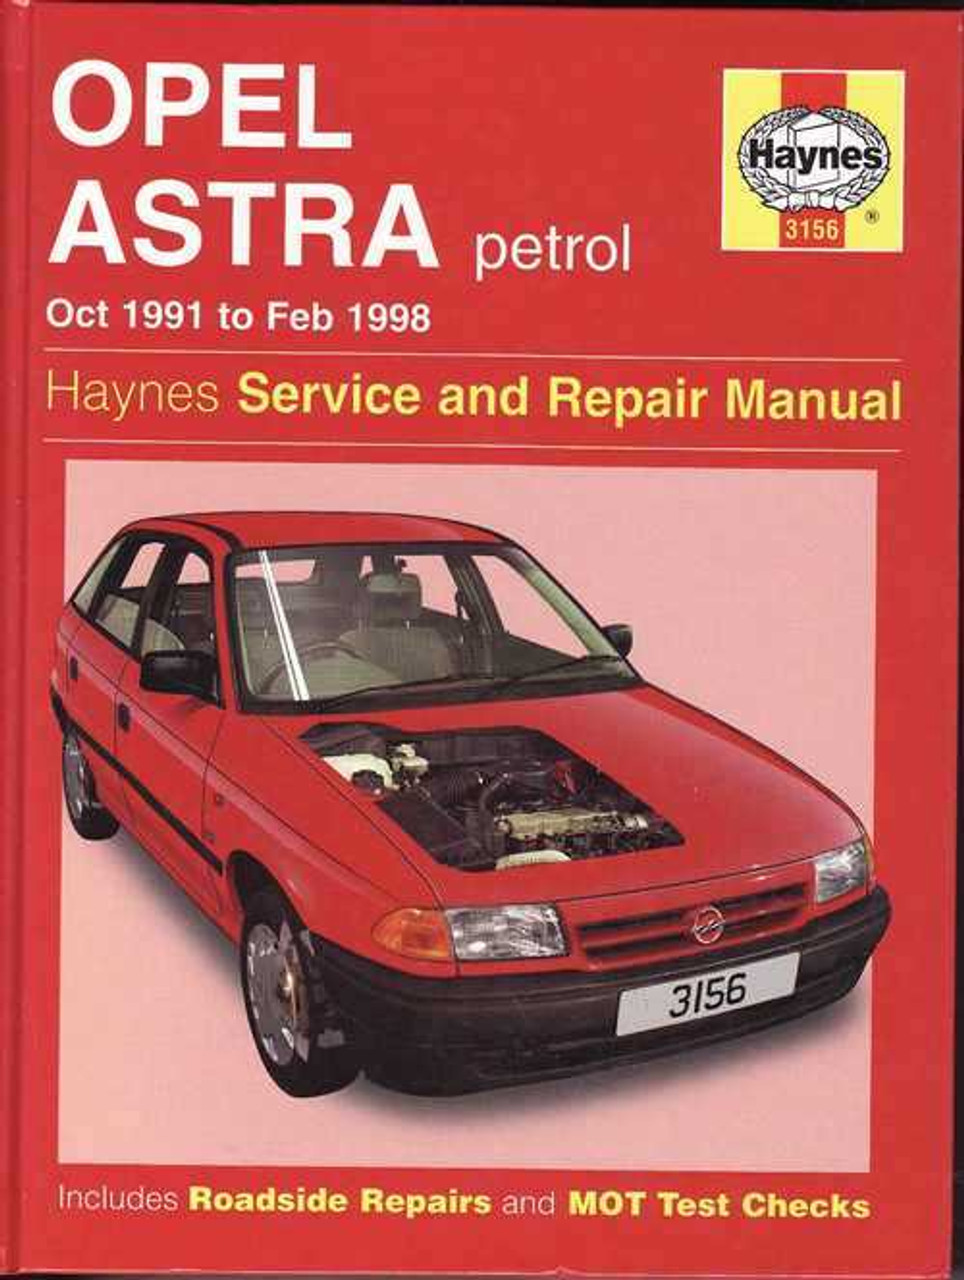 holden astra opel petrol 1991 1998 workshop manual rh automotobookshop com au 2016 Holden Astra 2002 Holden Astra